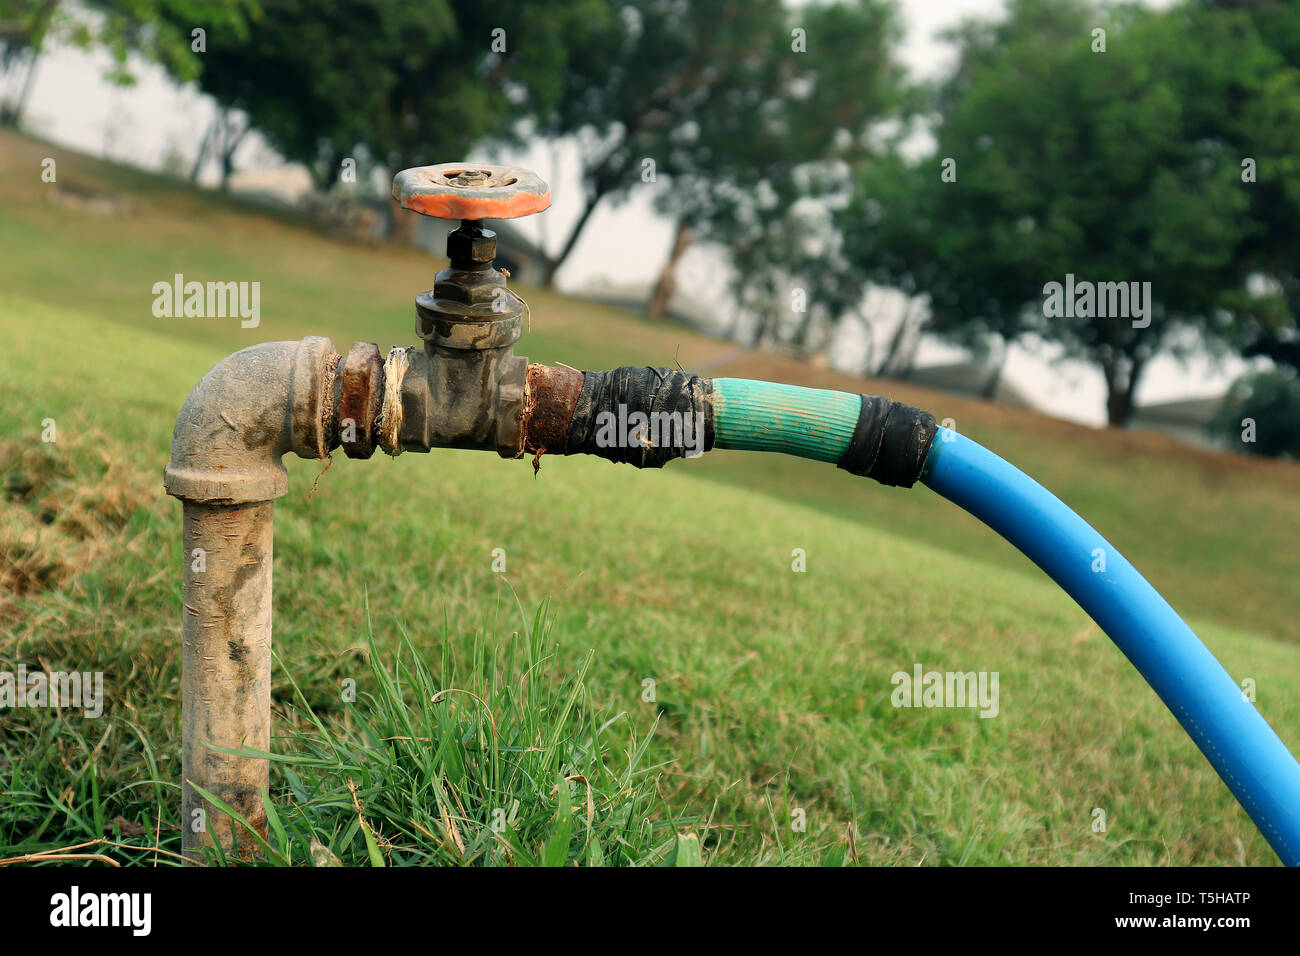 Faucet Water from faucet water valve, gate valve in the green garden High resolution image gallery. - Stock Image